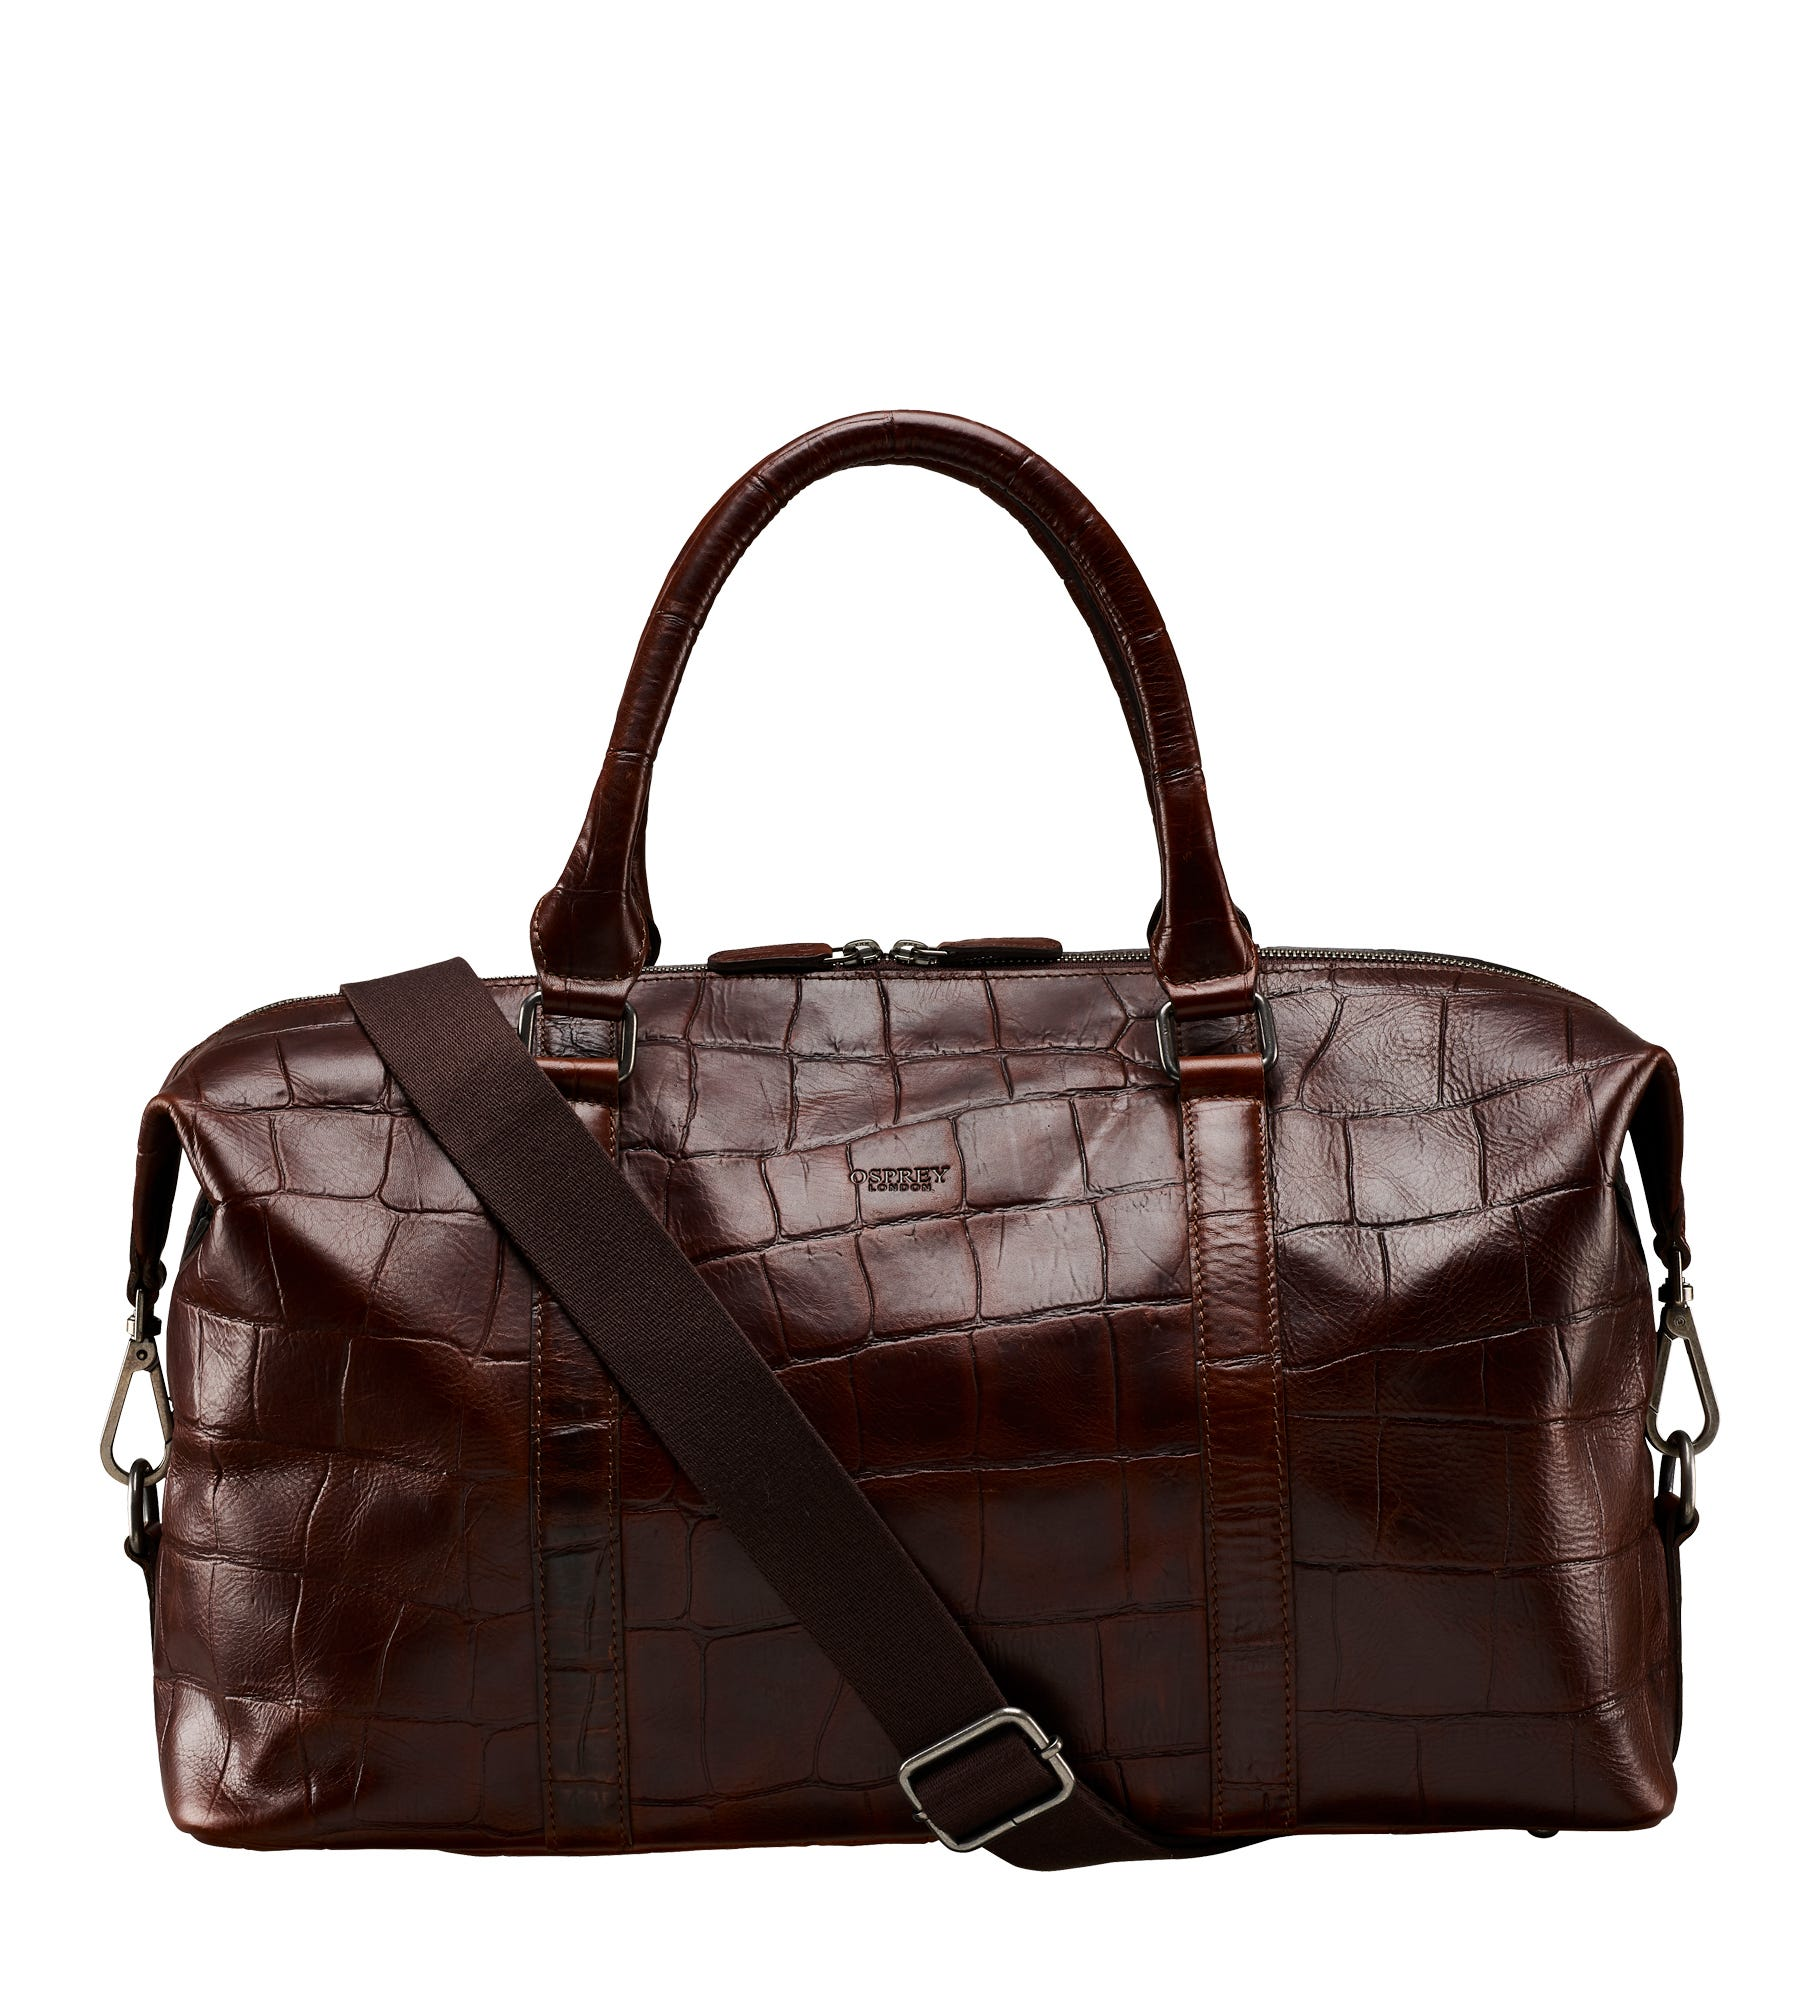 An image of The Brixton Leather Weekender